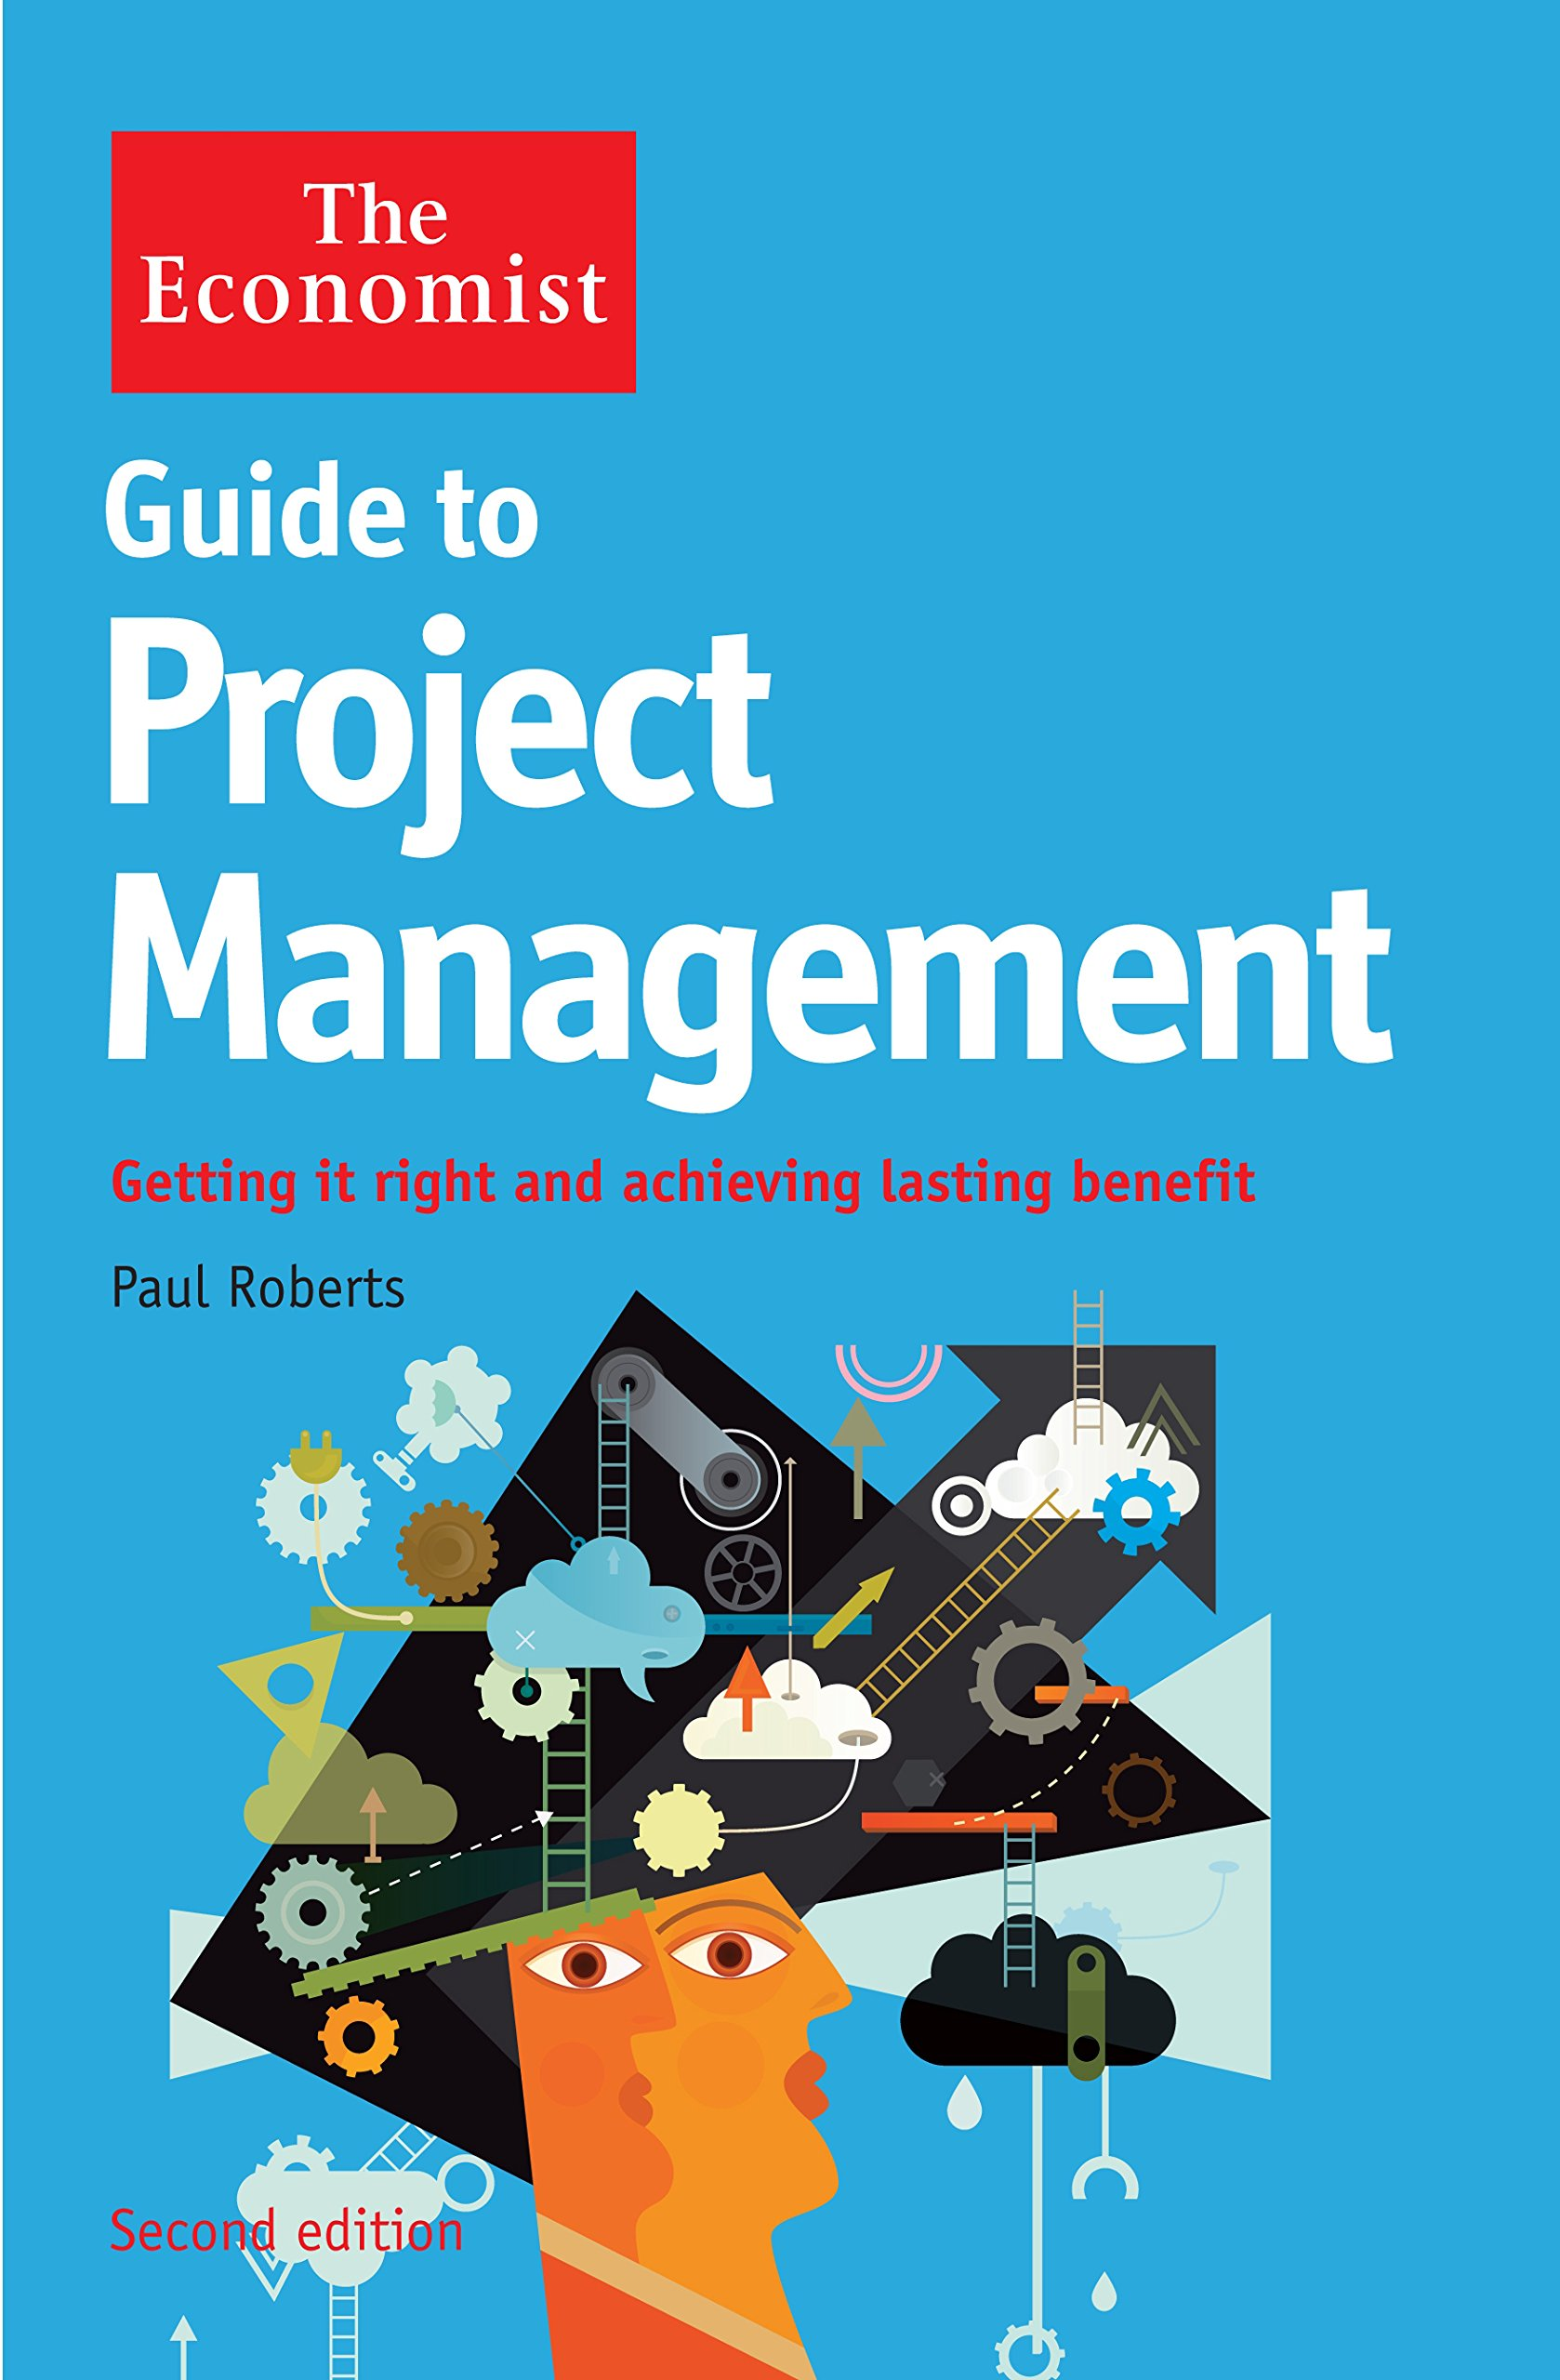 Download The Economist Guide to Project Management 2nd Edition: Getting it right and achieving lasting benefit pdf